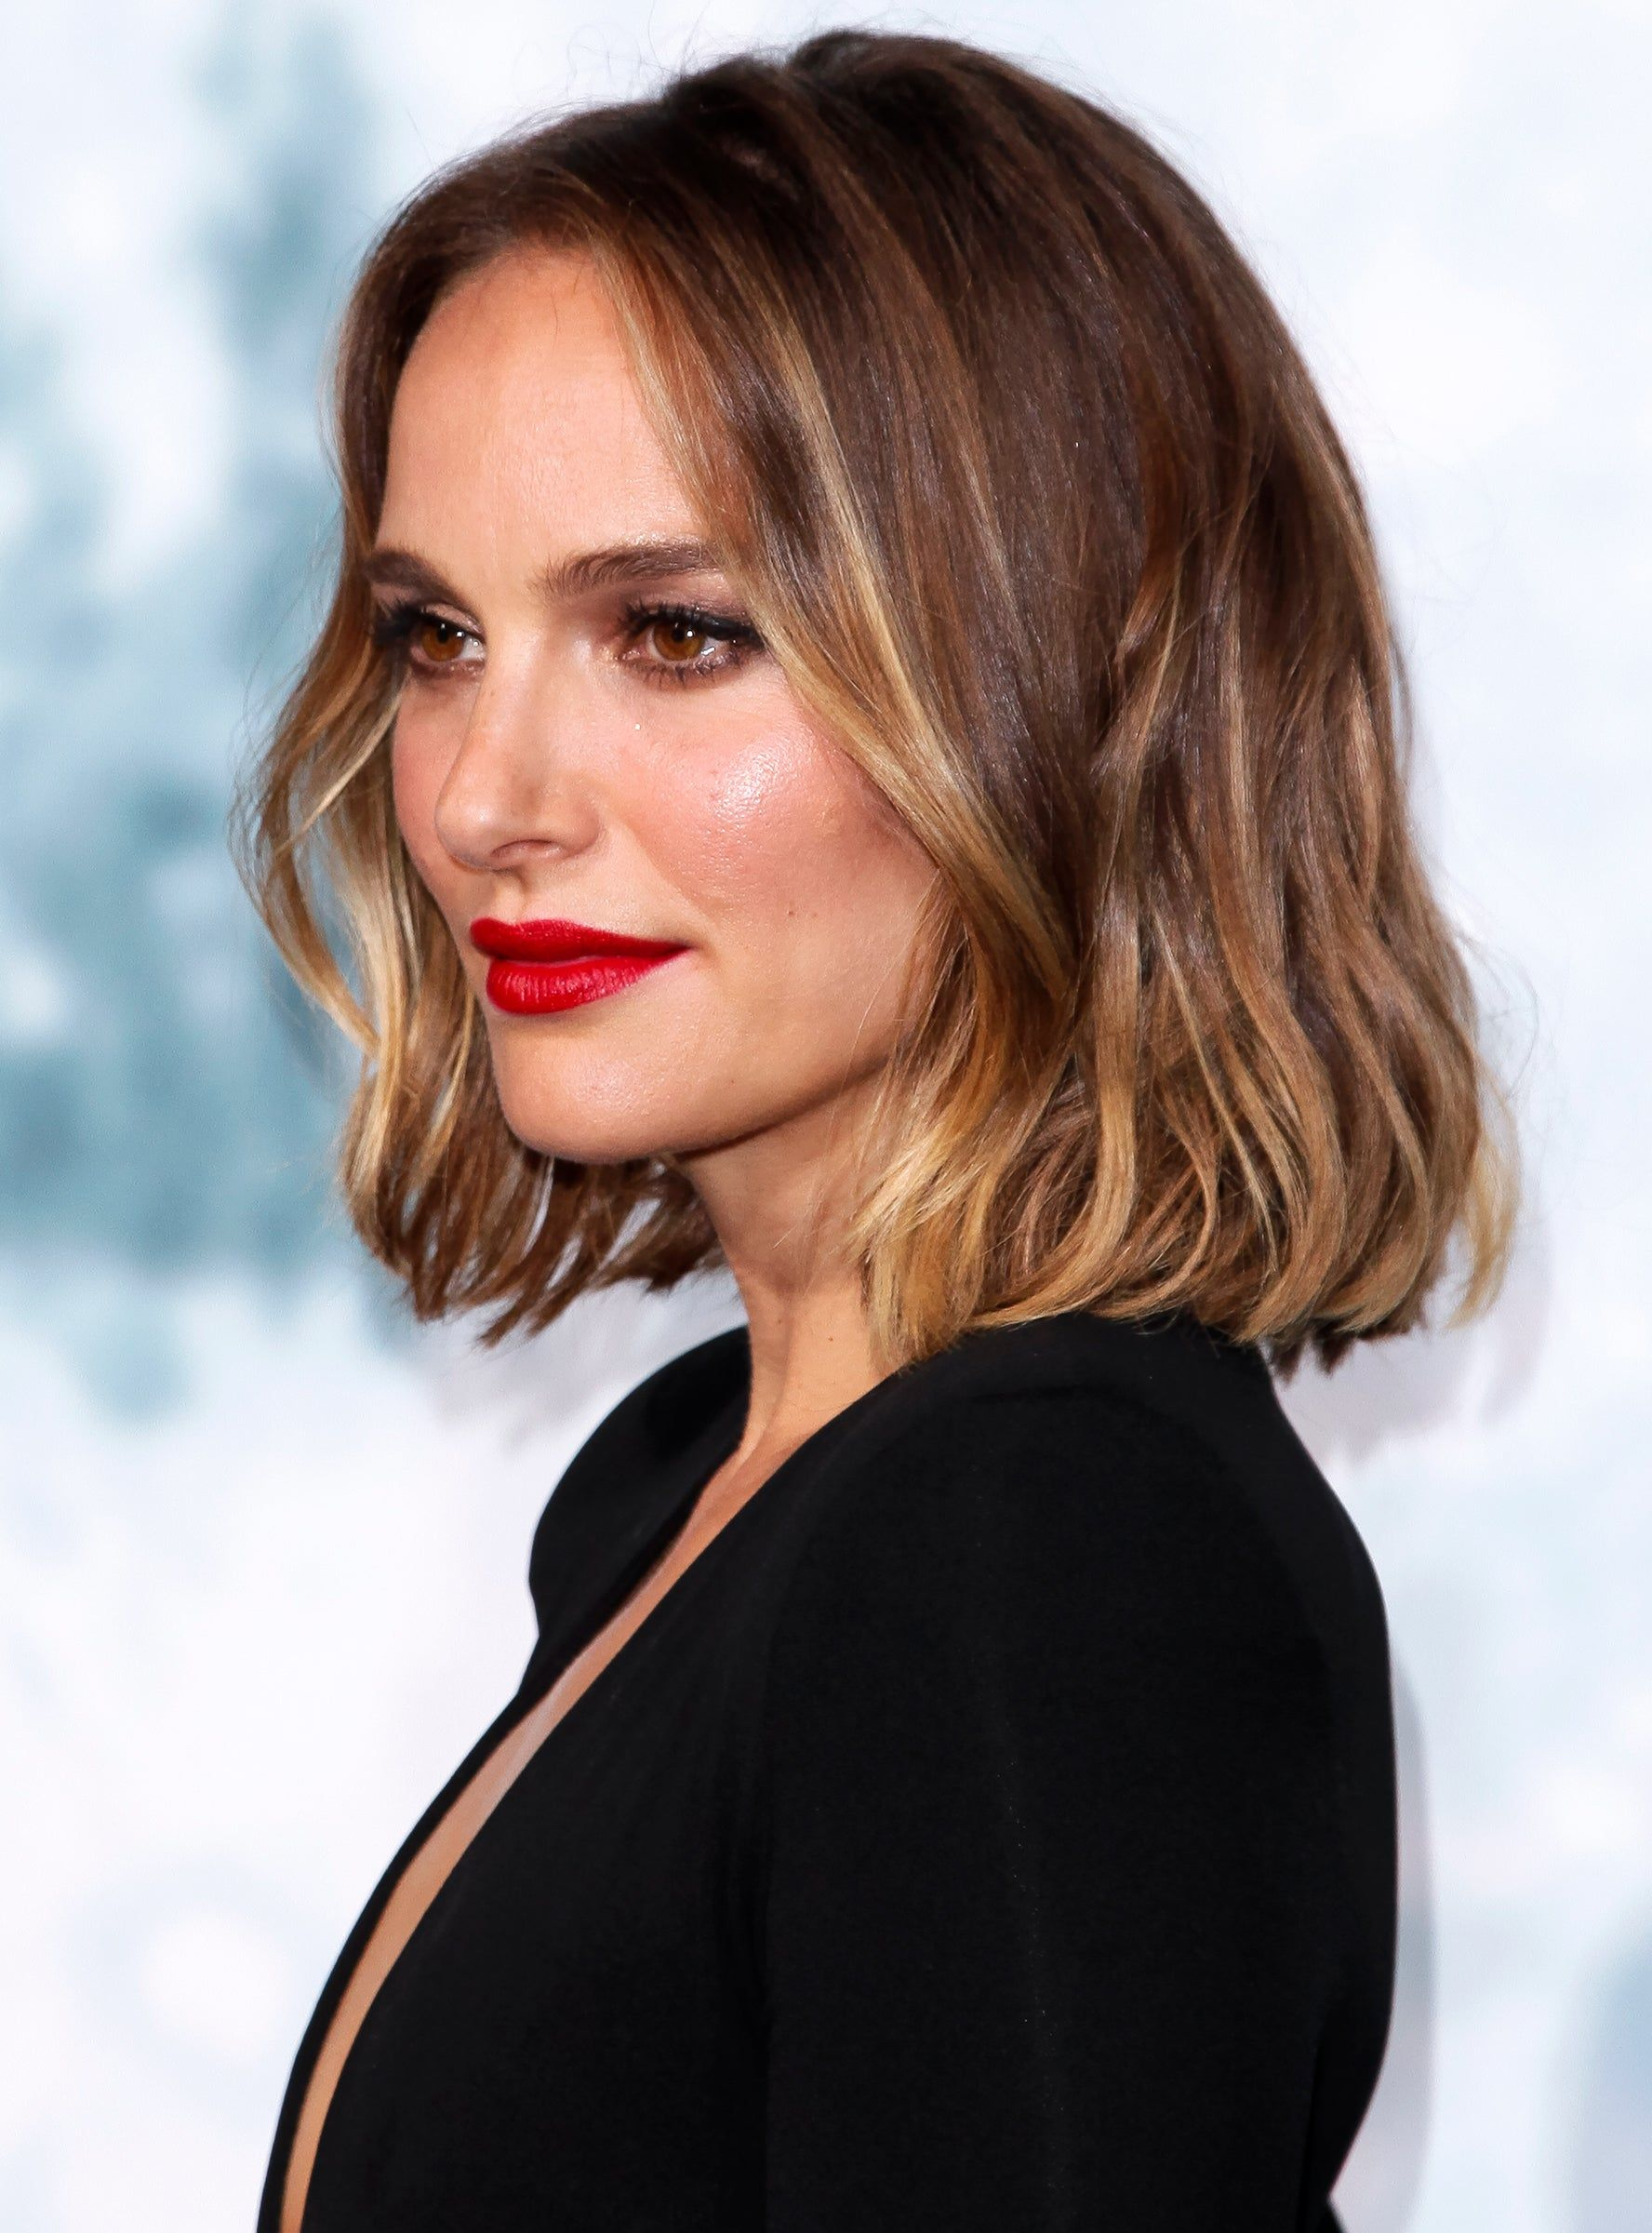 Smoky Gold Is The Breakout Hair-Color Trend For Wi